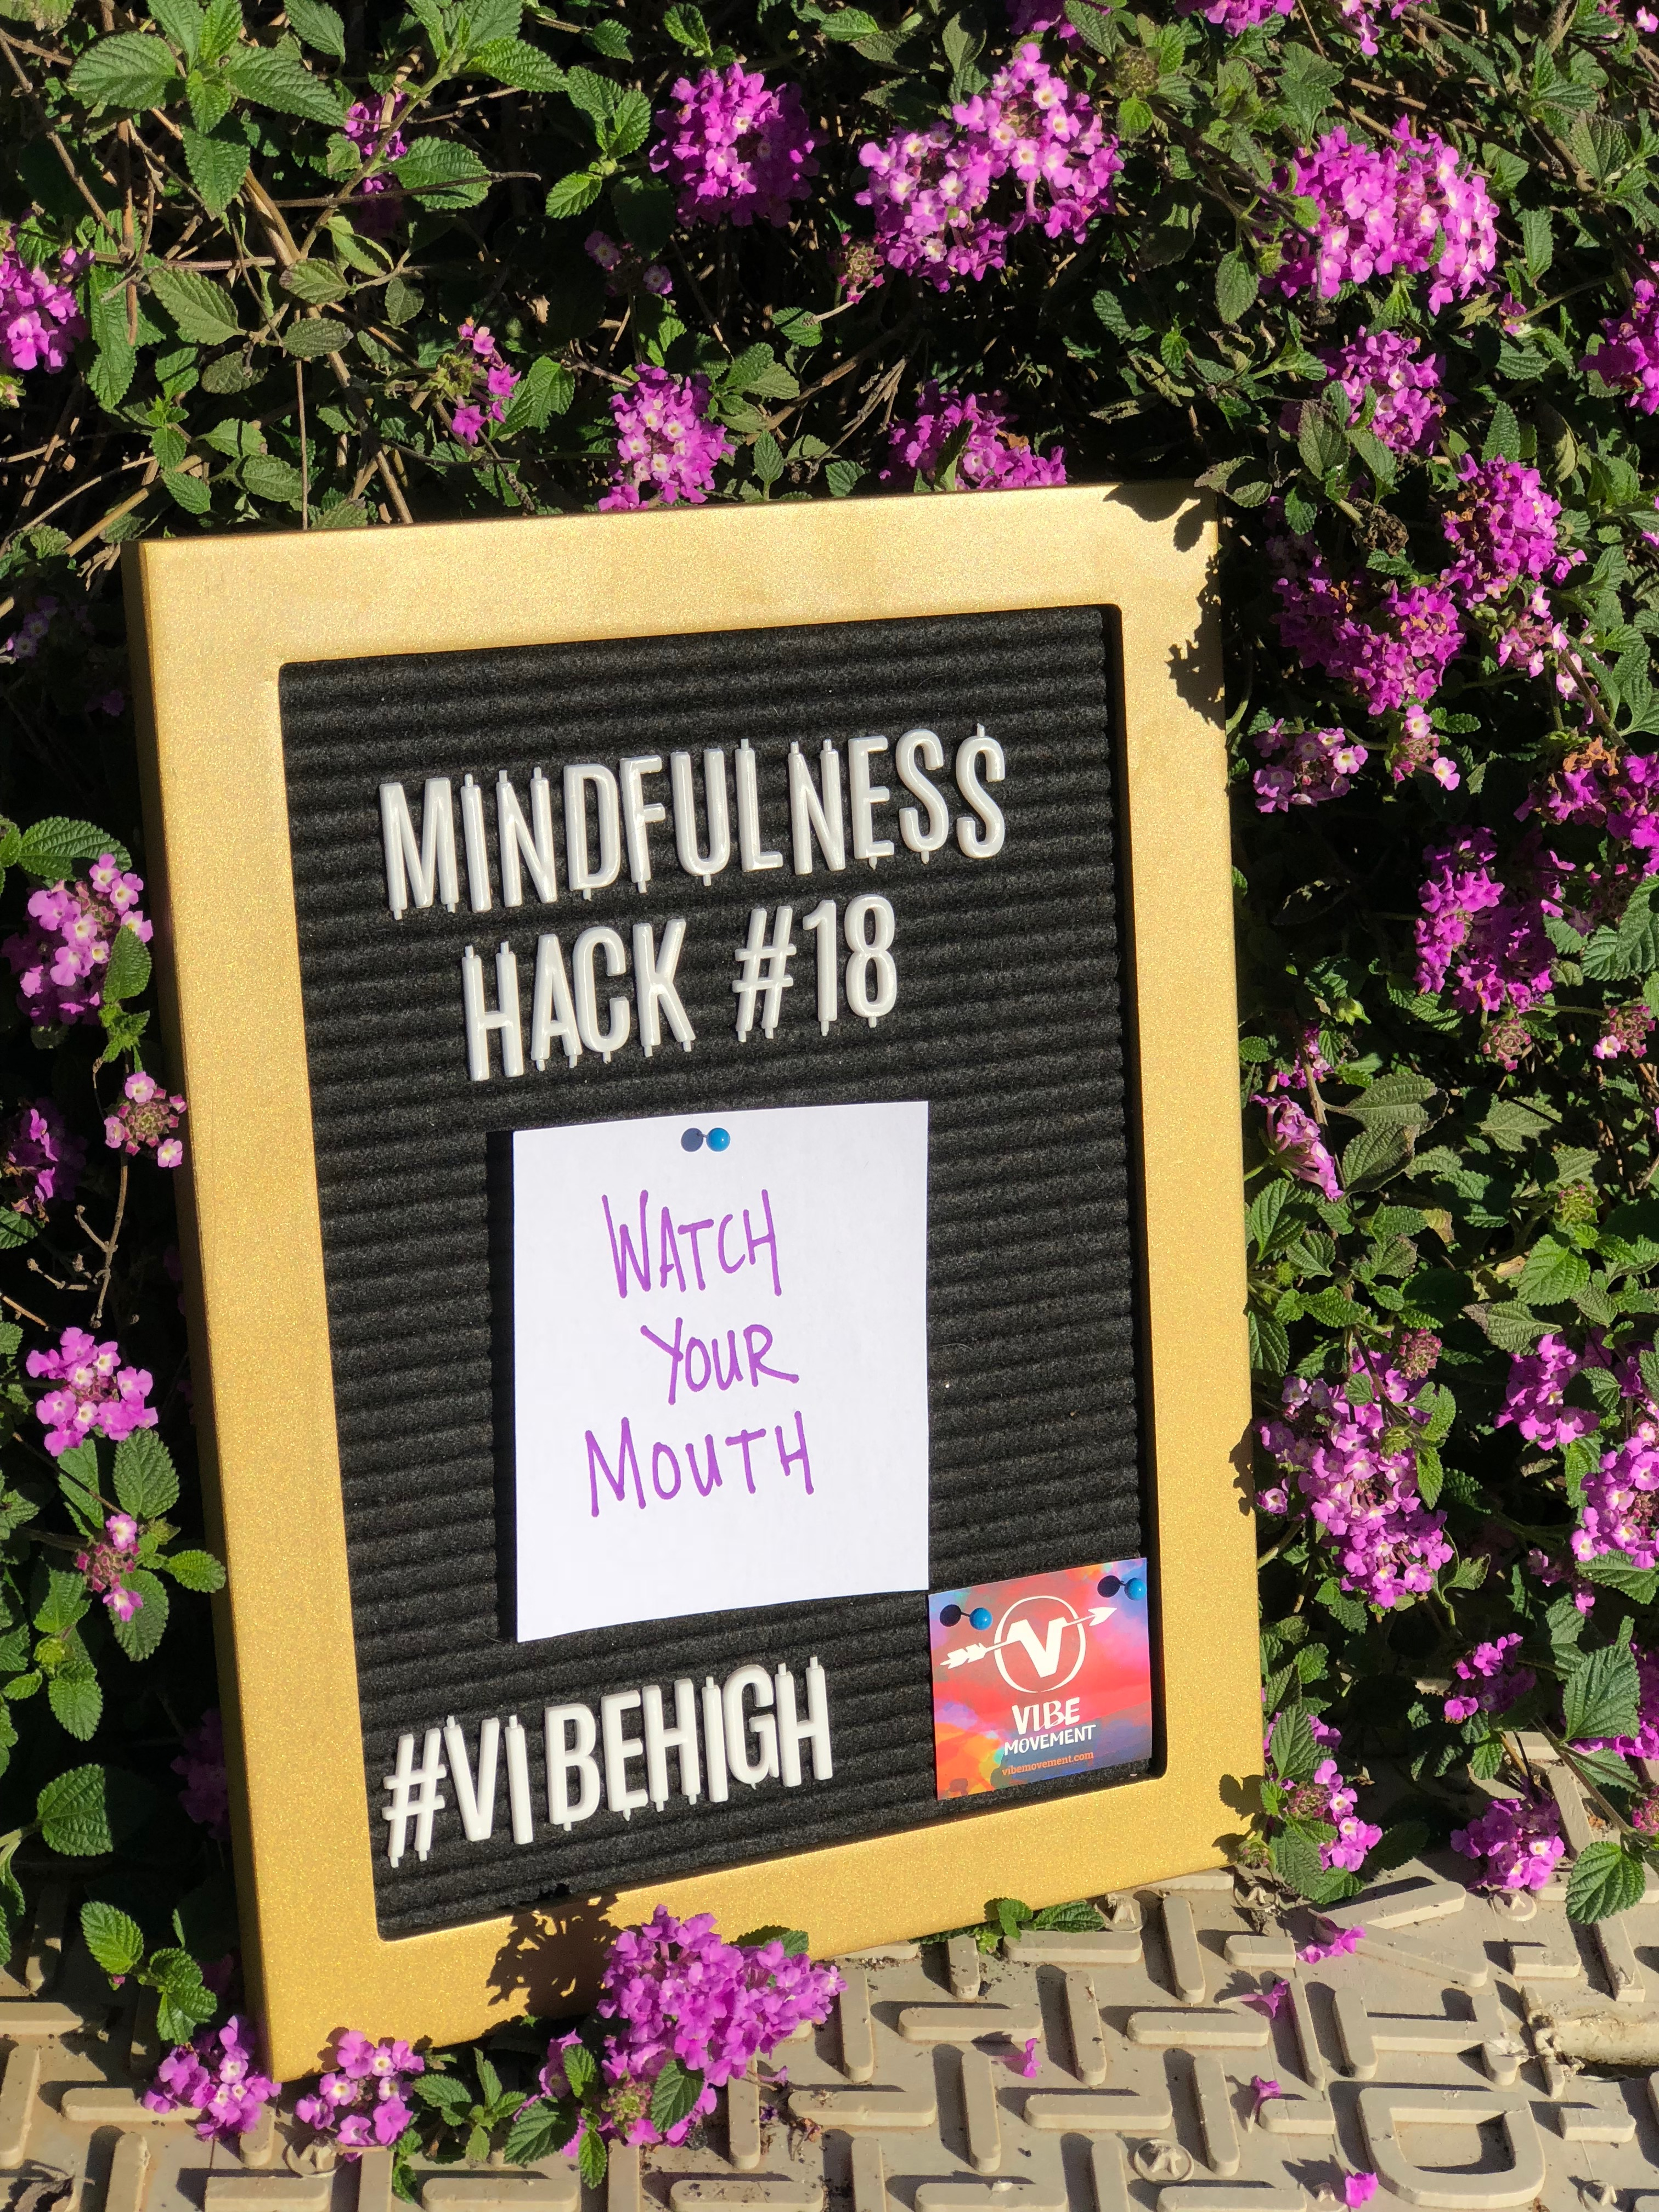 Mindfulness Hack #18: Watch Your Mouth